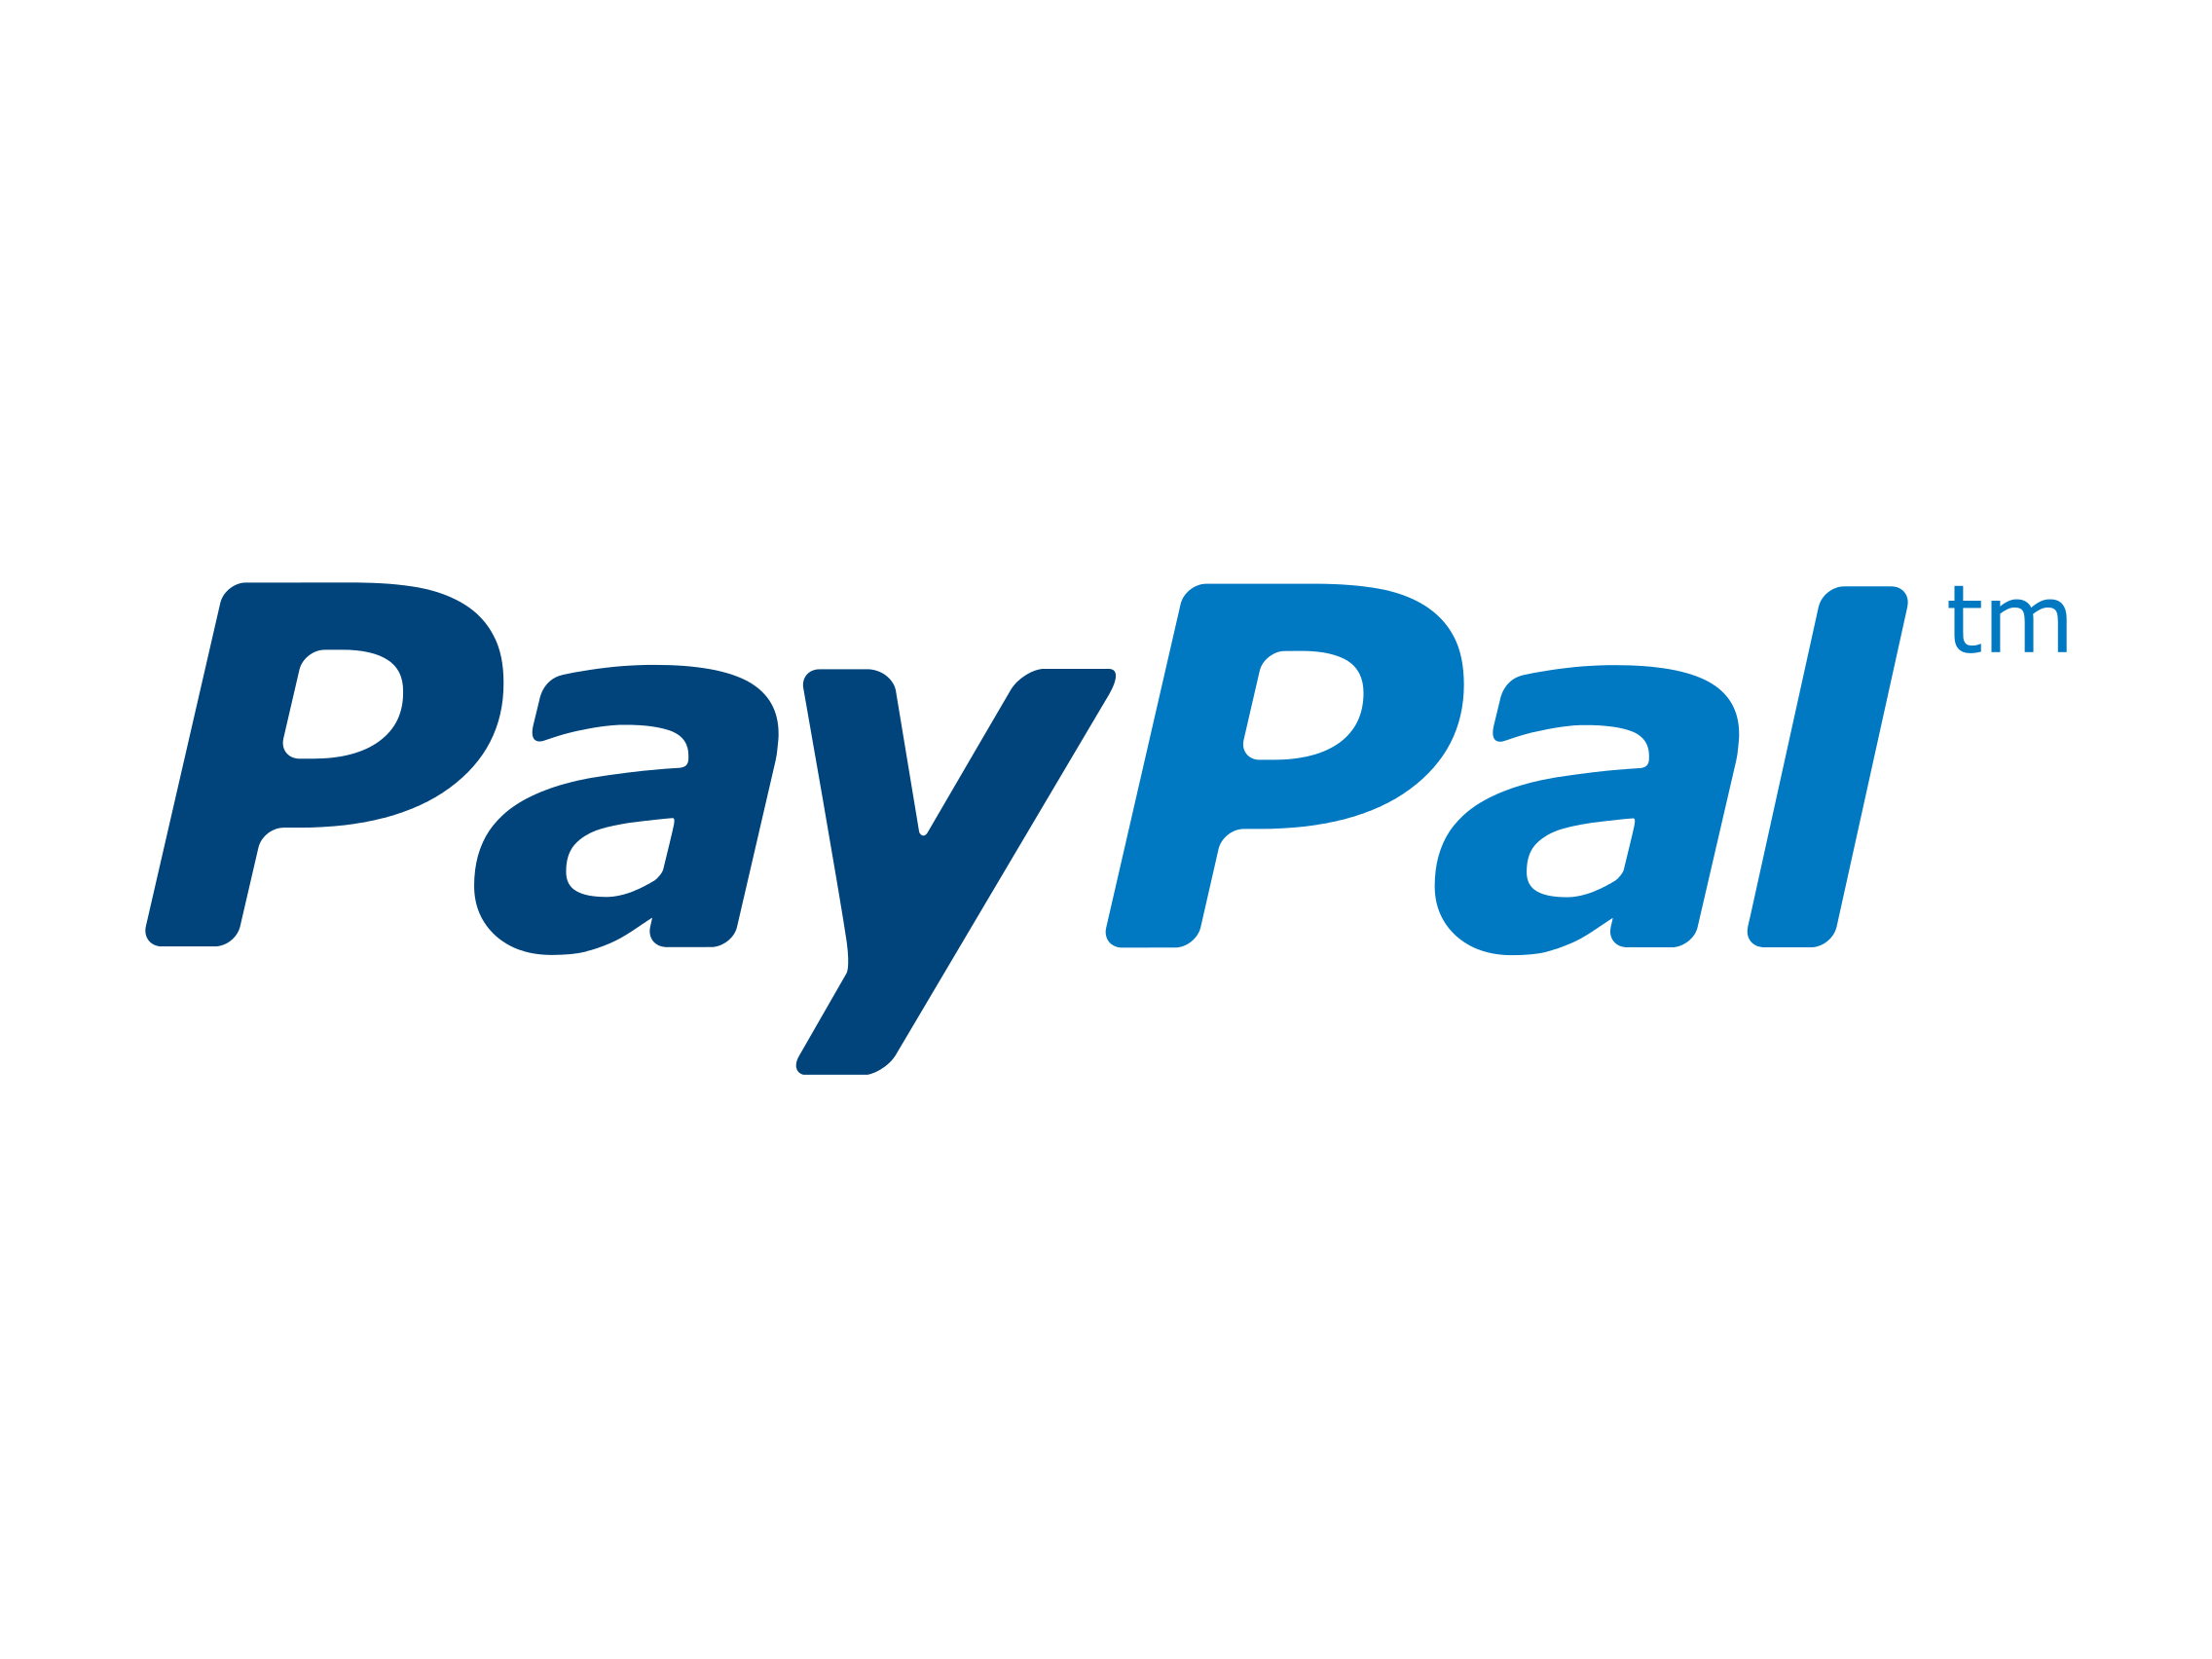 Paypal images png. Logo free download